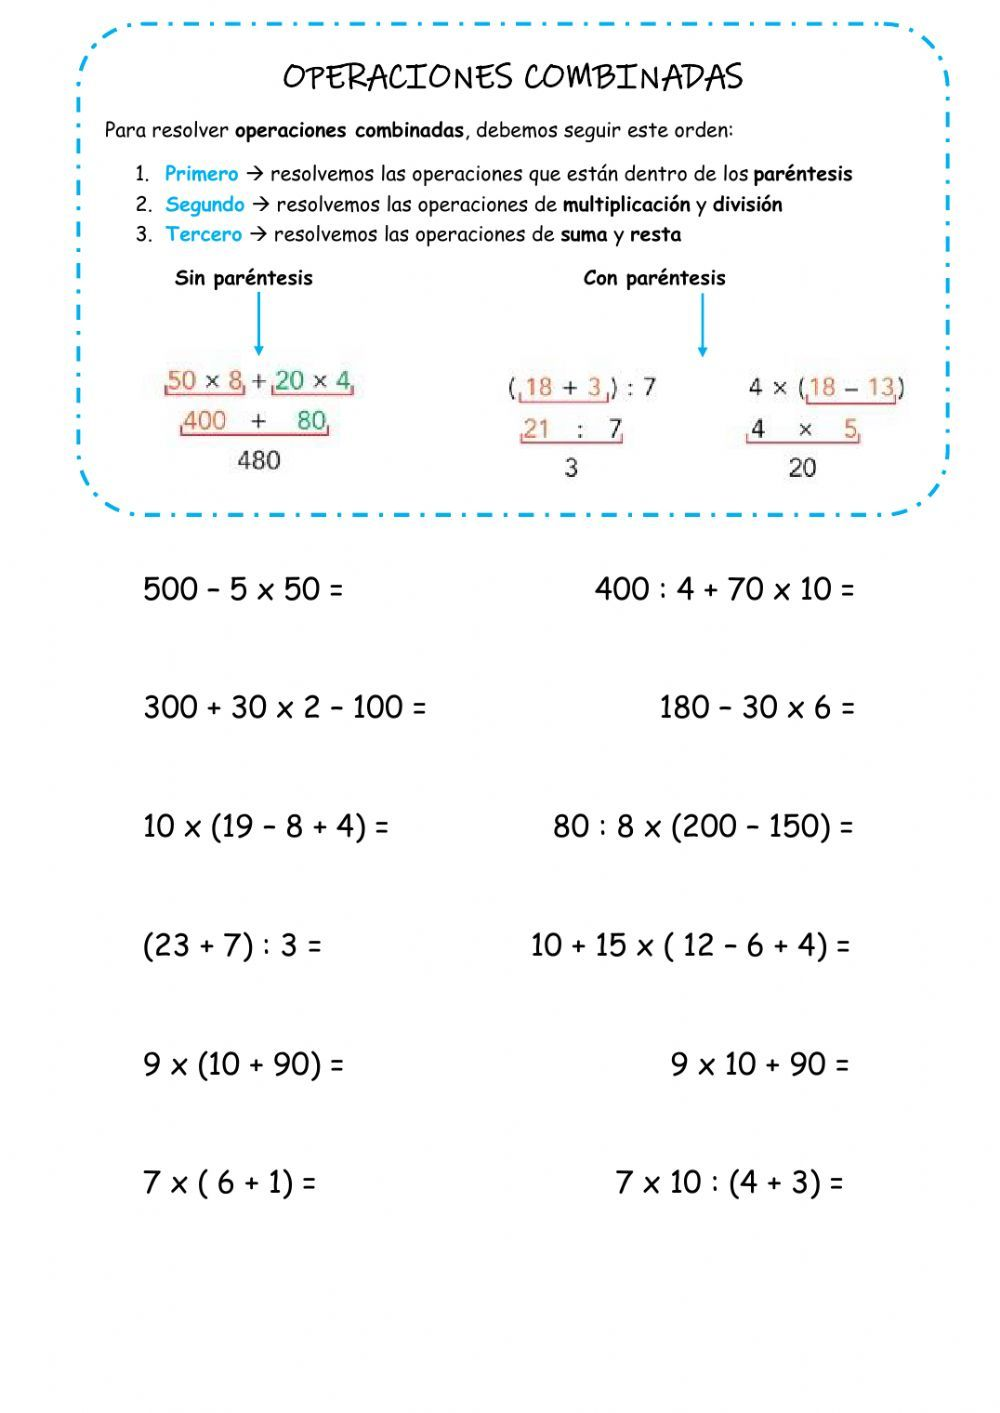 Operaciones Combinadas Interactive Activity For 5º Educación Primaria You Can Do The Exercises Onlin In 2021 Mental Maths Worksheets Teaching Math Order Of Operations